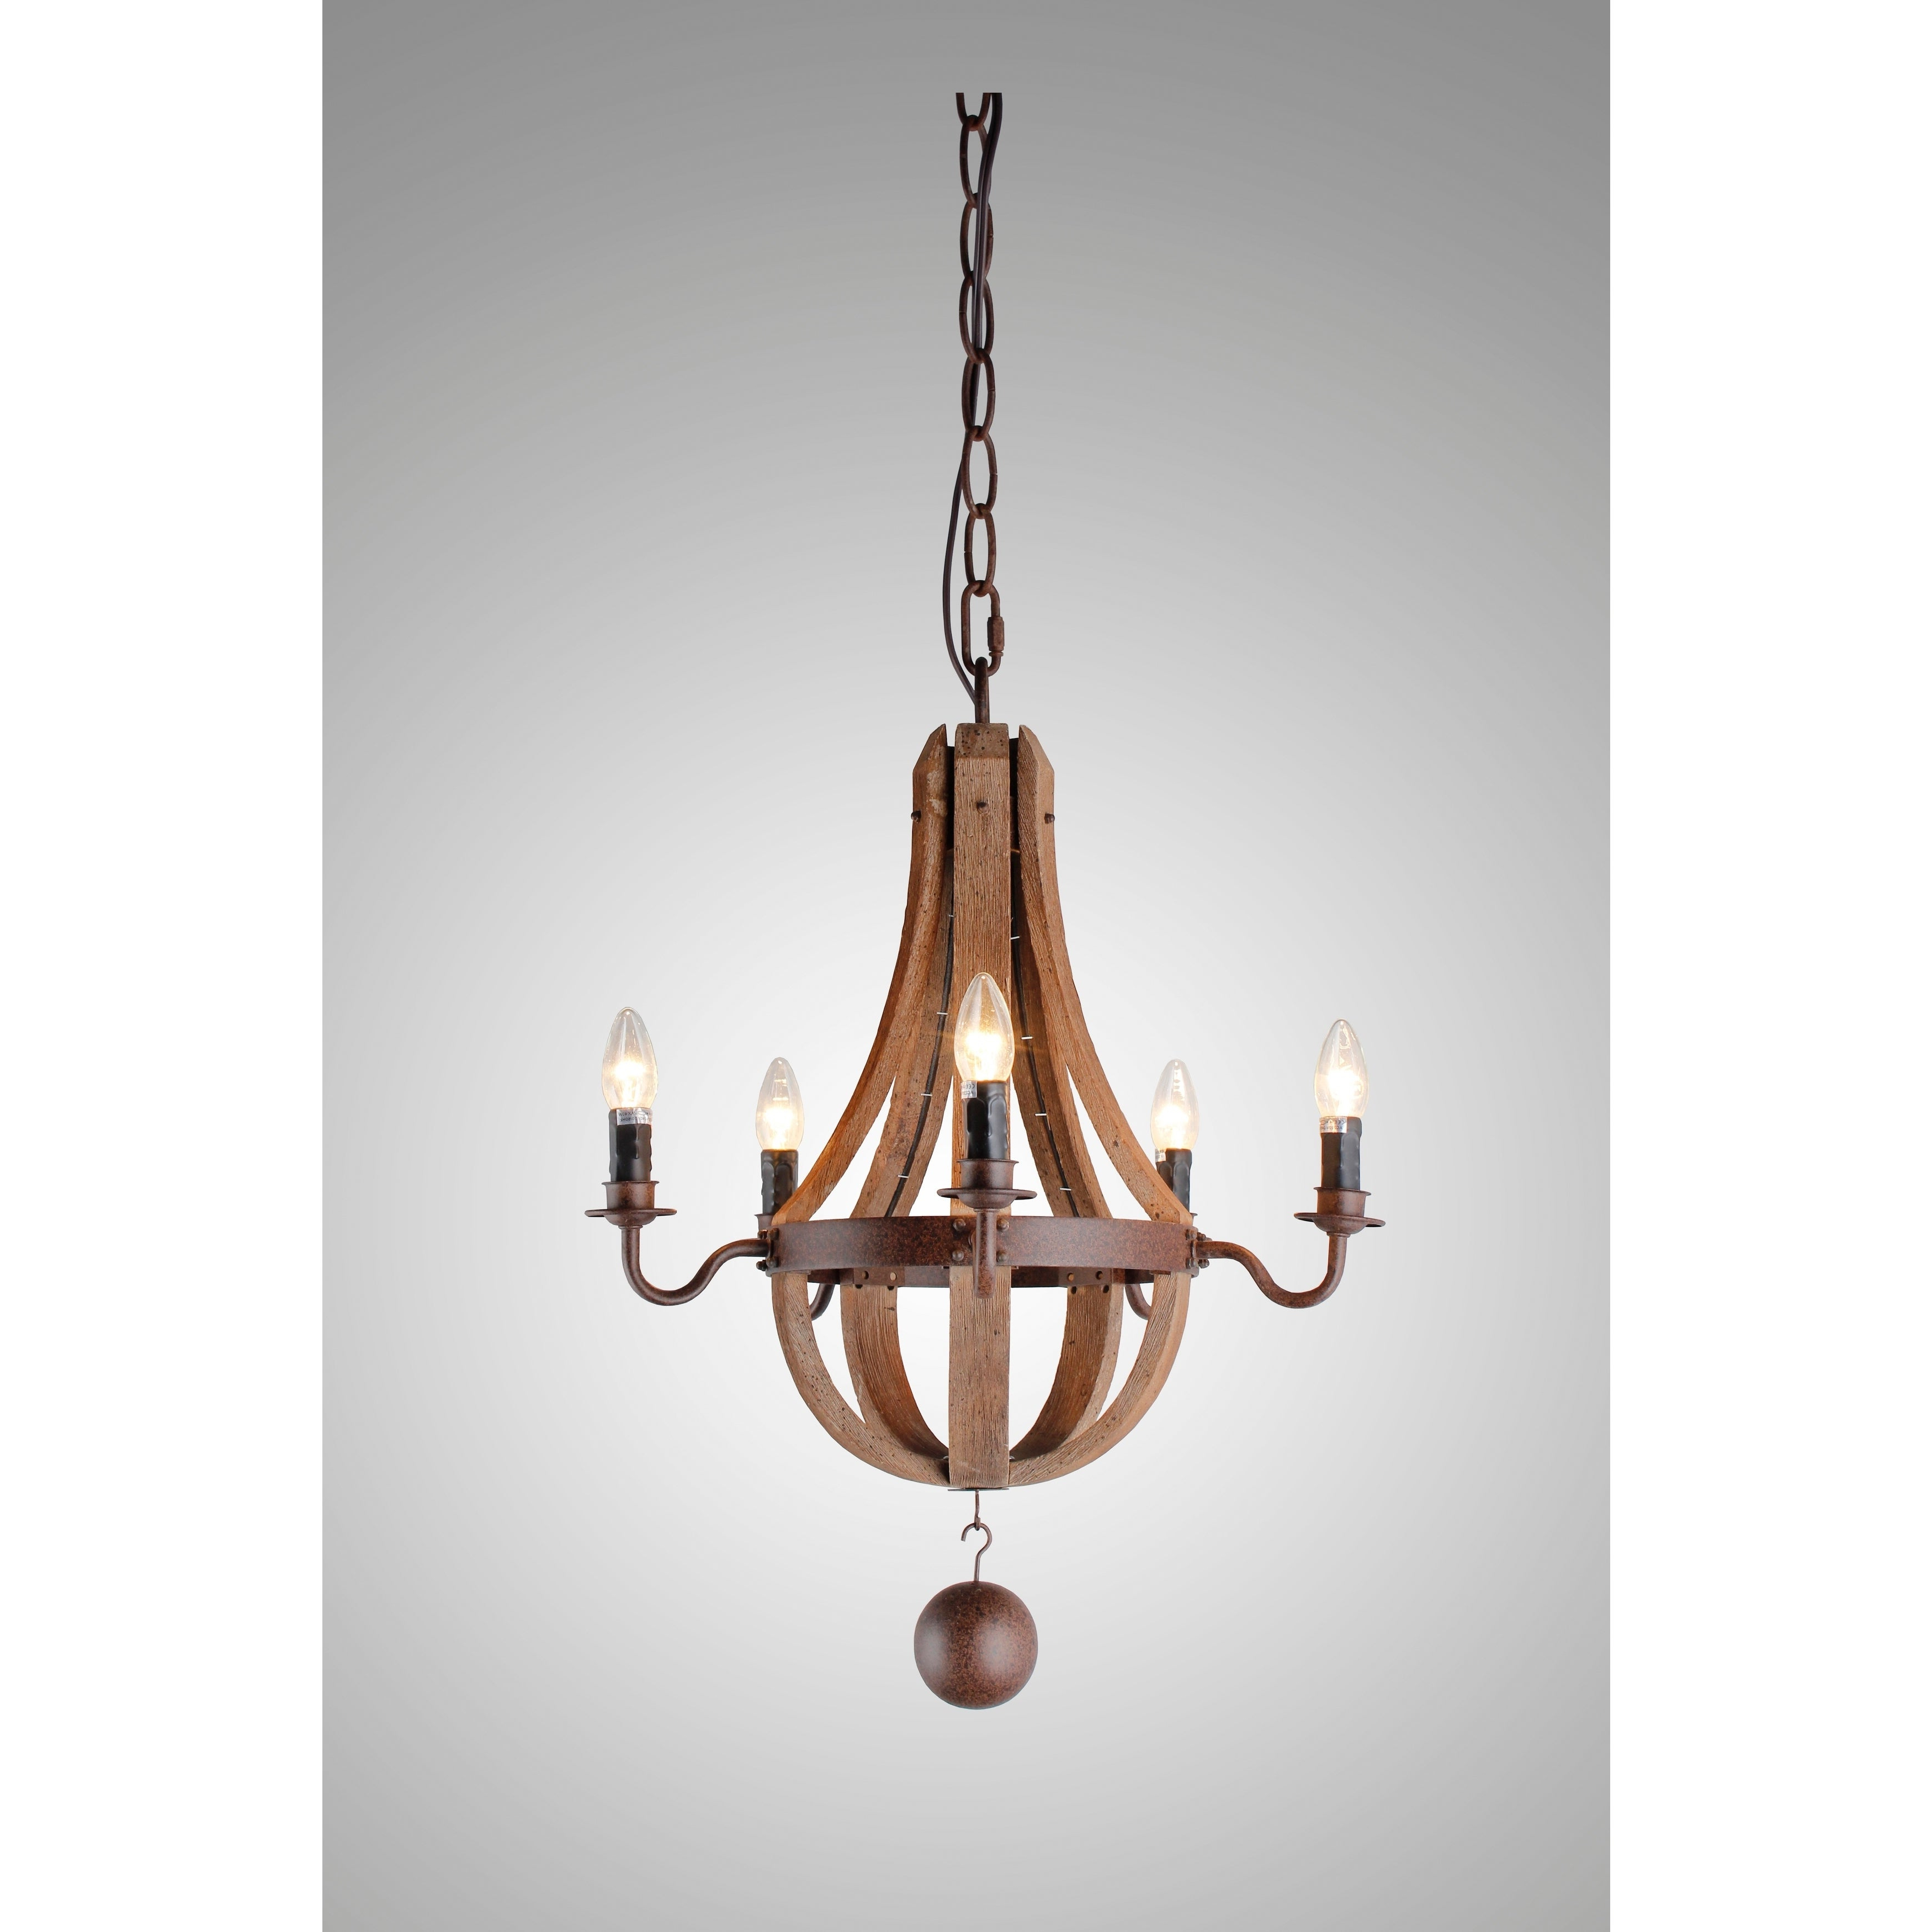 Widely Used Berger 5 Light Candle Style Chandeliers With Regard To Y Decor 5 Light Candle Style Chandelier In Iron Frame & Rustic Finish (View 17 of 20)